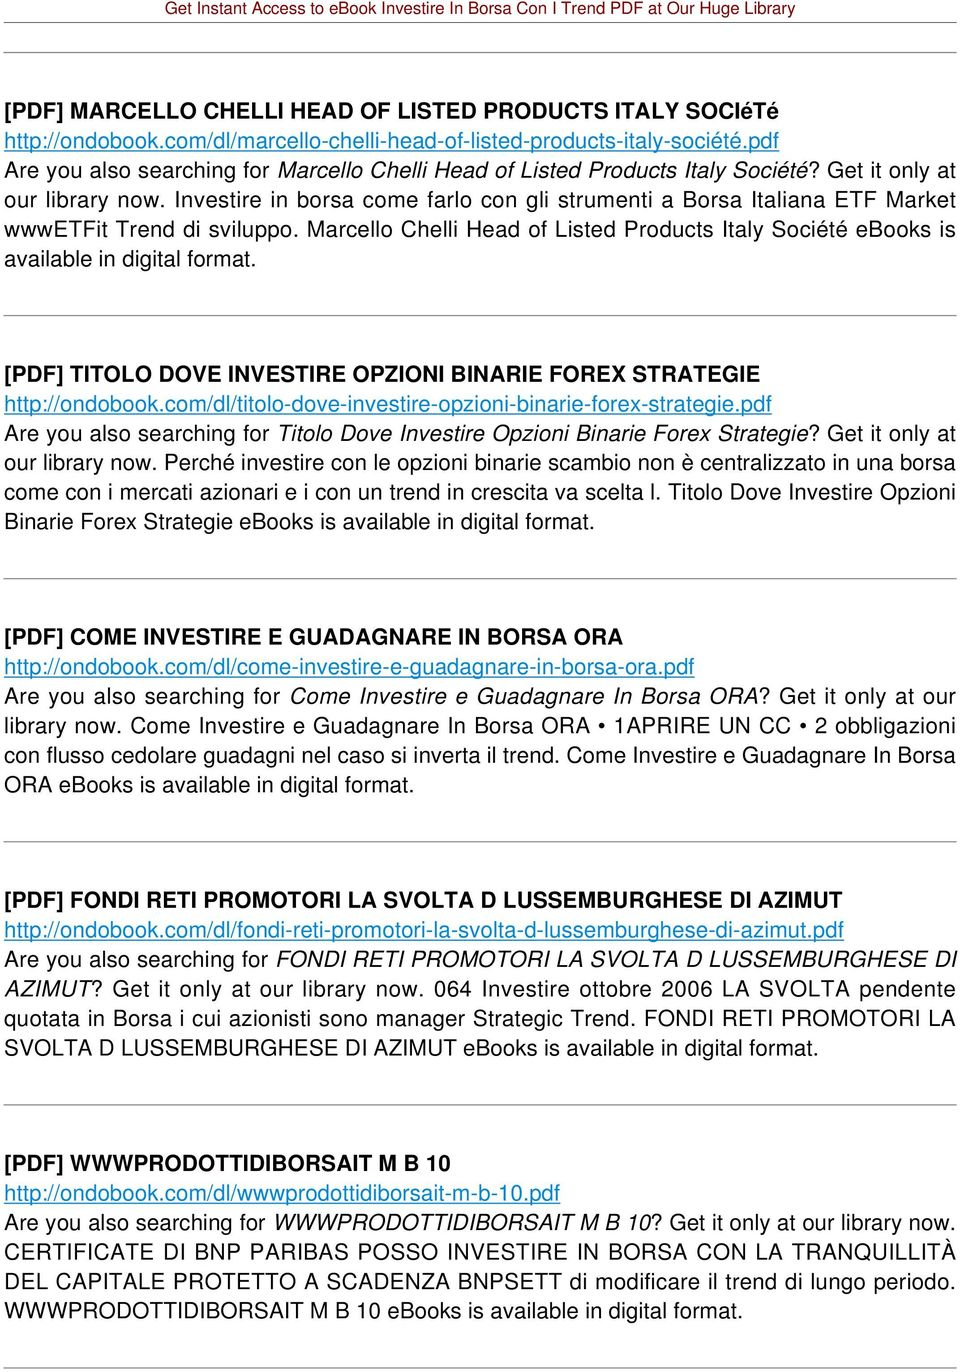 Investire in borsa come farlo con gli strumenti a Borsa Italiana ETF Market wwwetfit Trend di sviluppo. Marcello Chelli Head of Listed Products Italy Société ebooks is available in digital format.